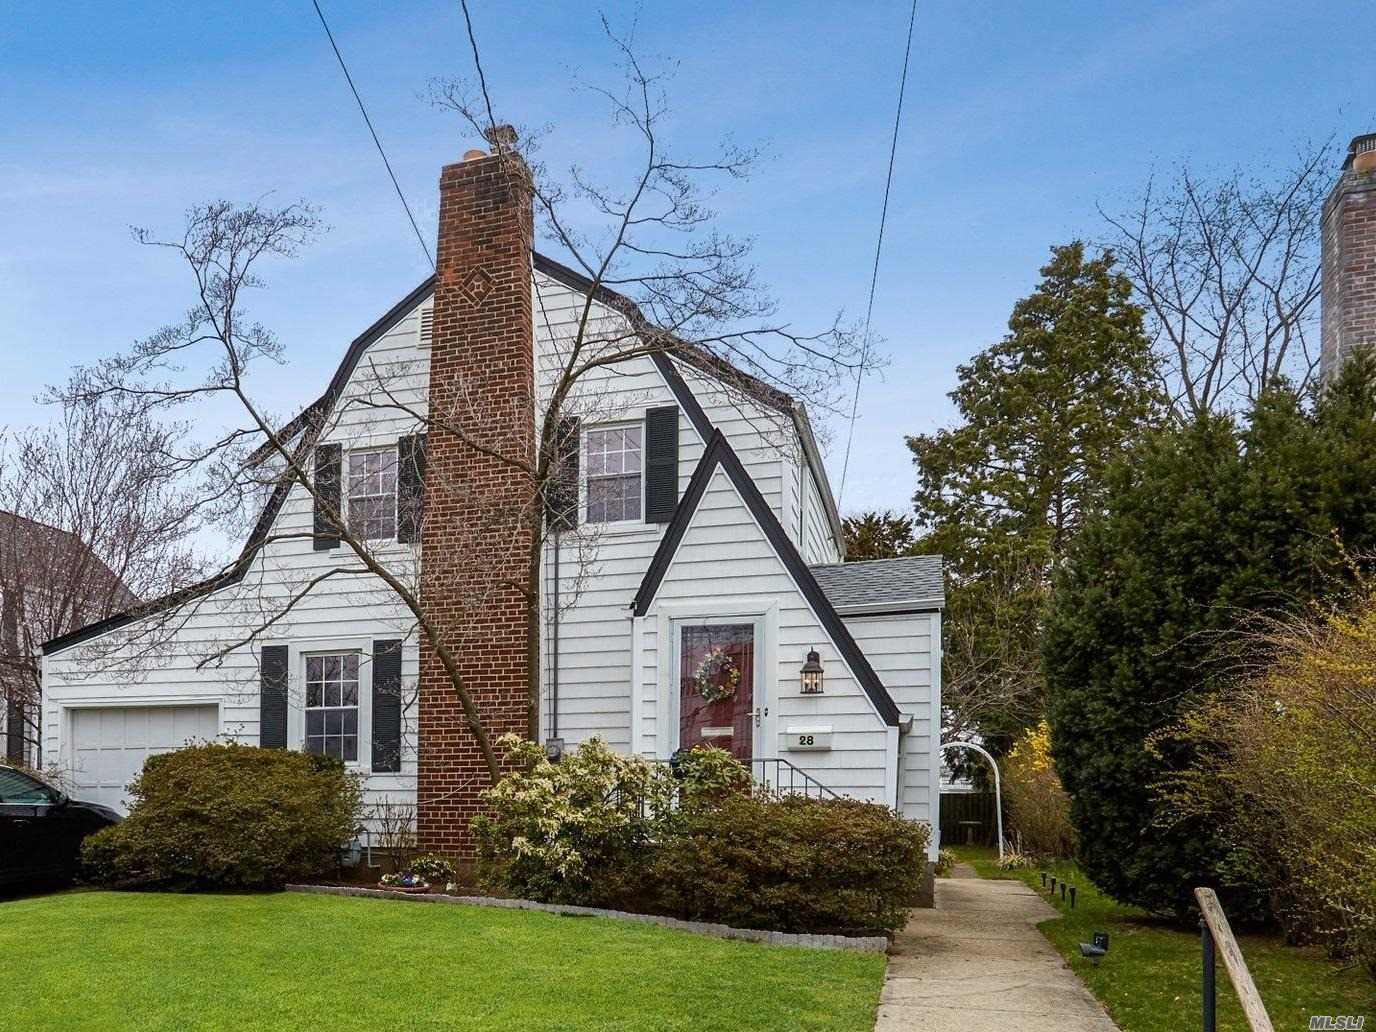 Prime location in Stewart Manor Village. Beautiful Detached colonial with Fam Rm or MBR Extension. Living Rm w wood burning FP. Oversized Formal DR, 4 BRS on 2nd floor including a walk through . Convenient location to shops, restaurants and LIRR.